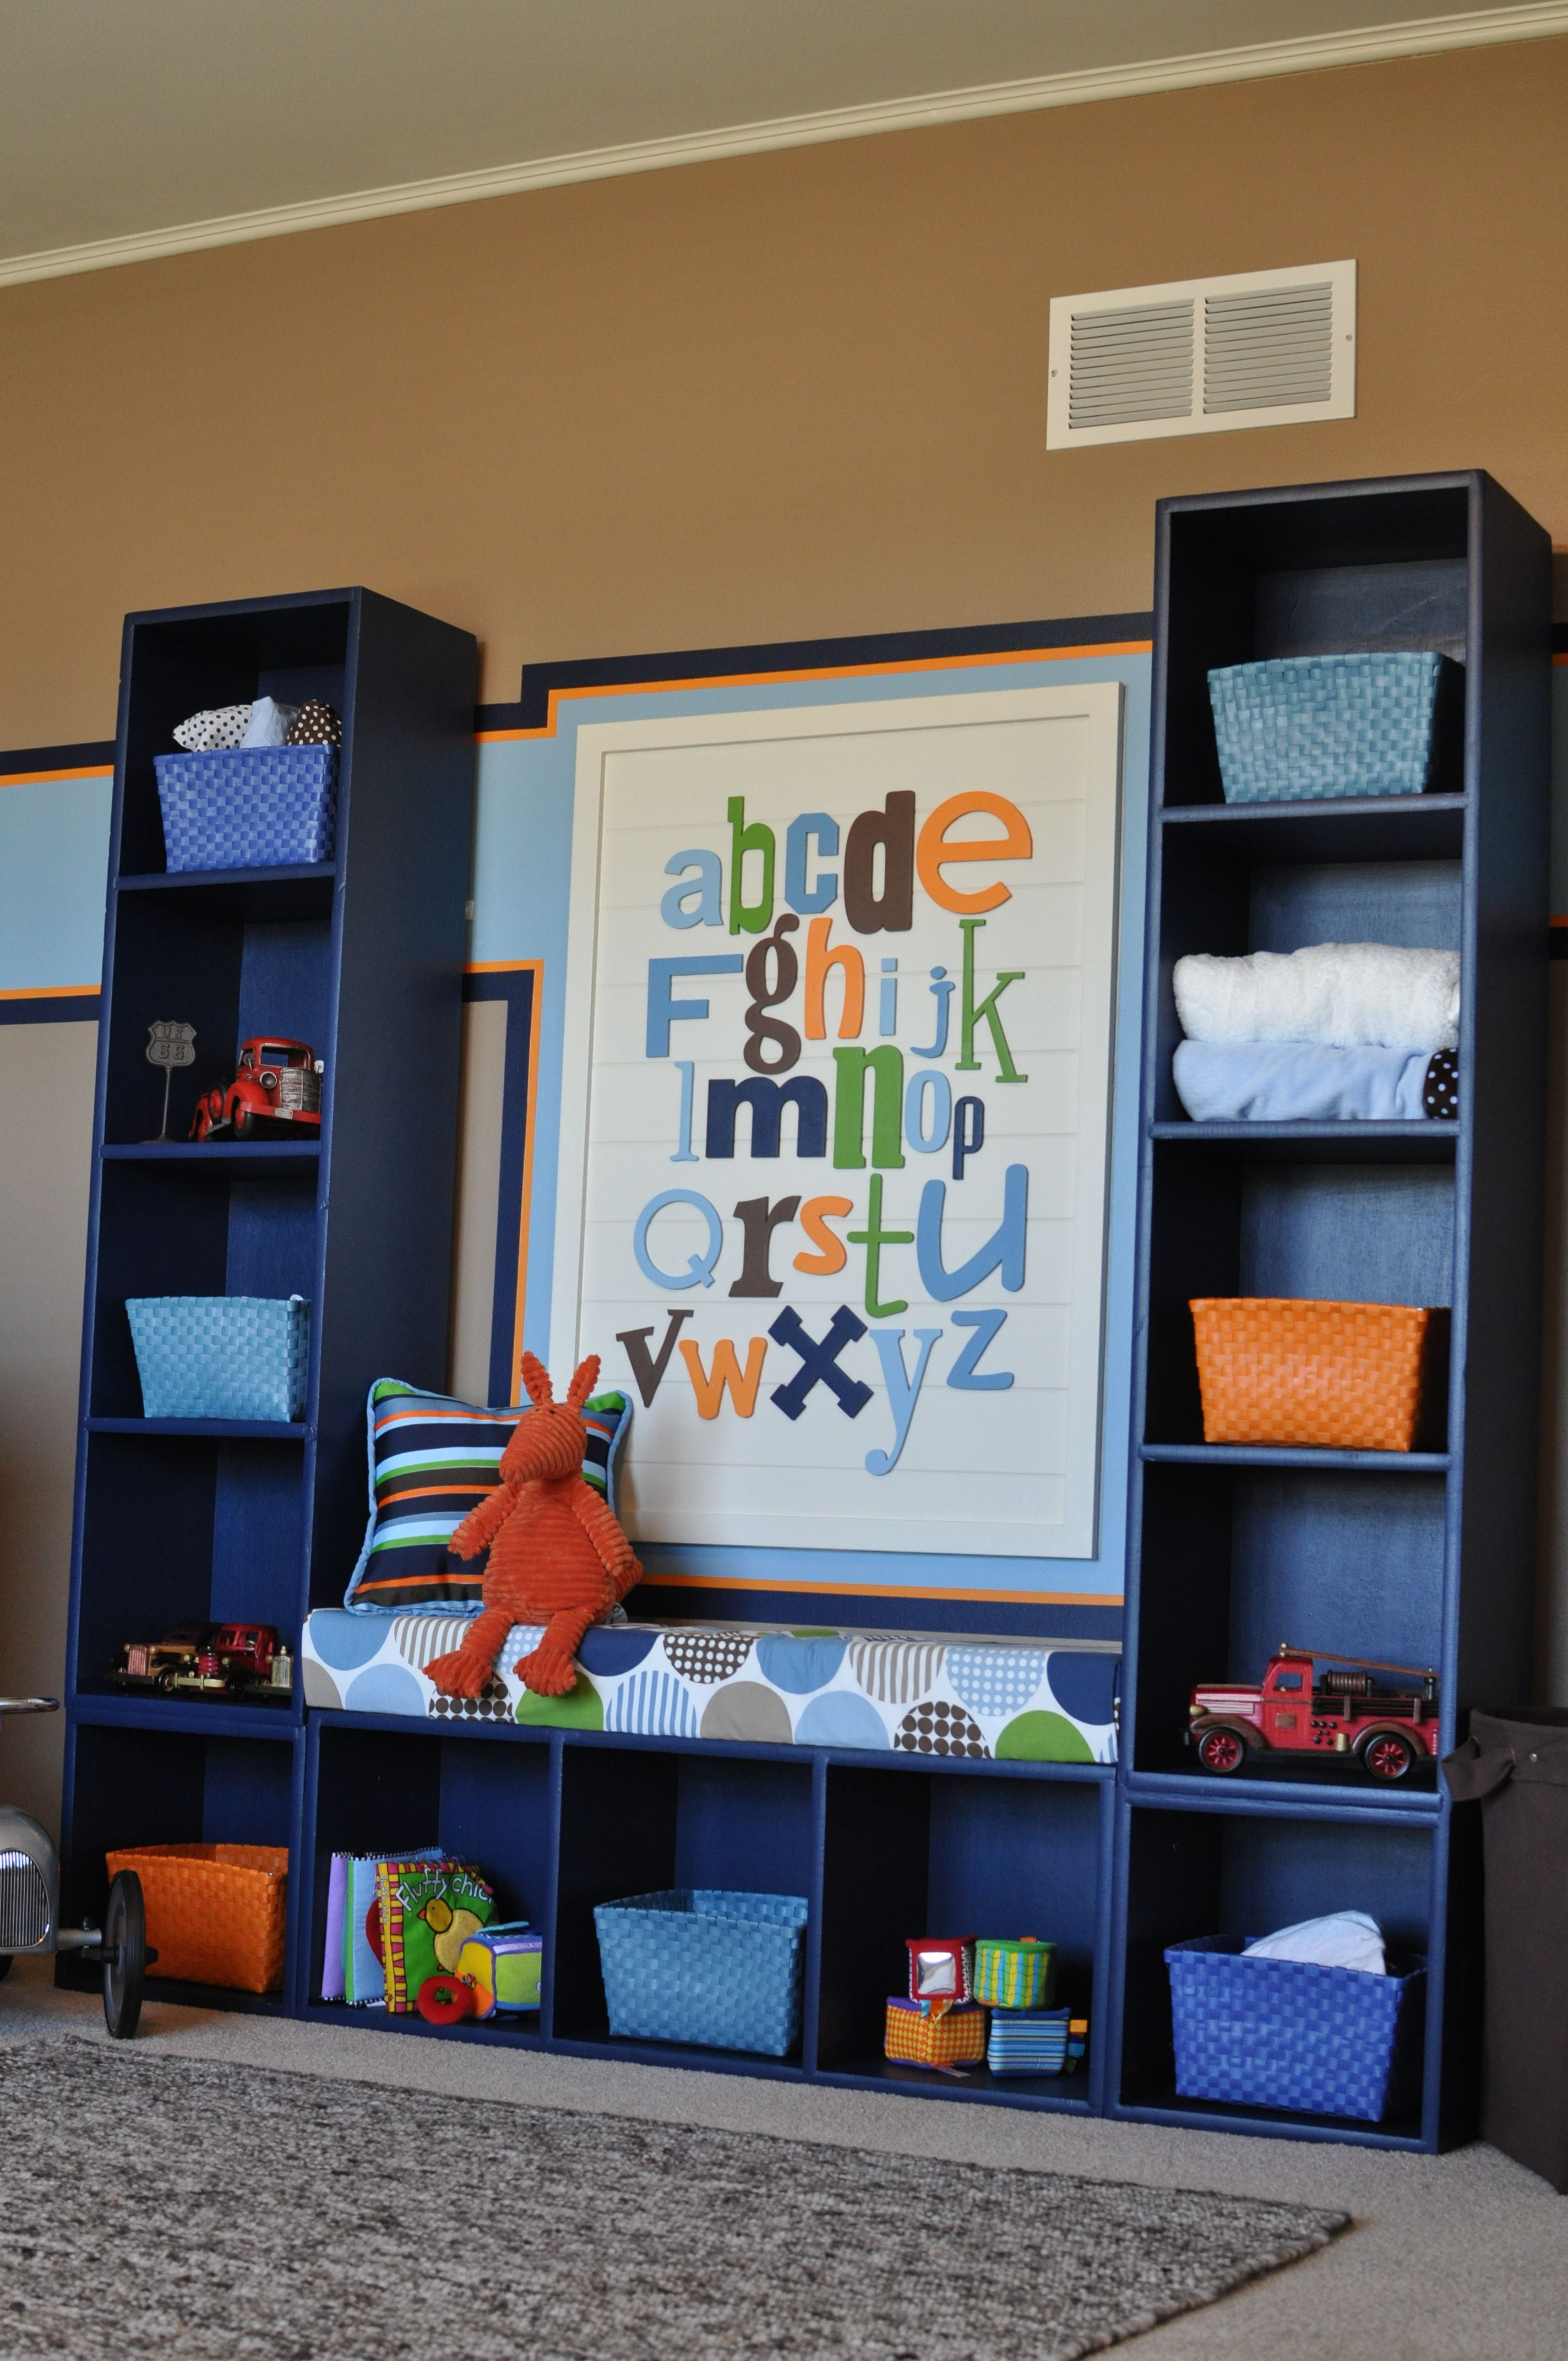 options little tall boys lucy archie available bookcases cg willow fairweather colour af bookcase